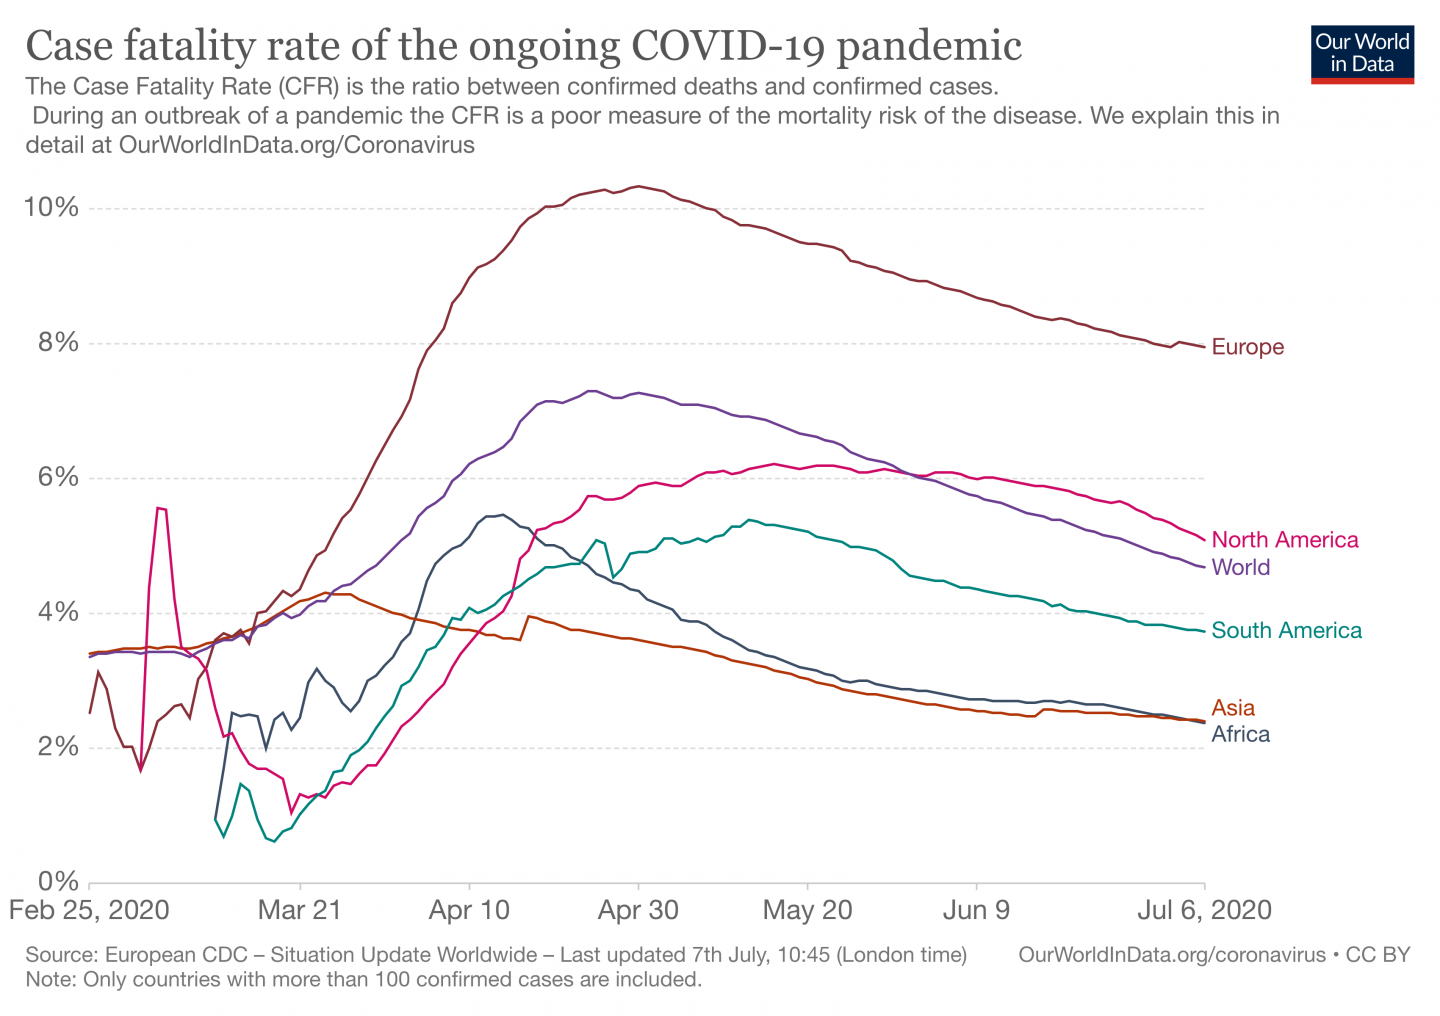 Line graph showing the case fatility rate of the COVID-19 pandemic by region. Europe is the highest at 8% as of 6 July 2020.